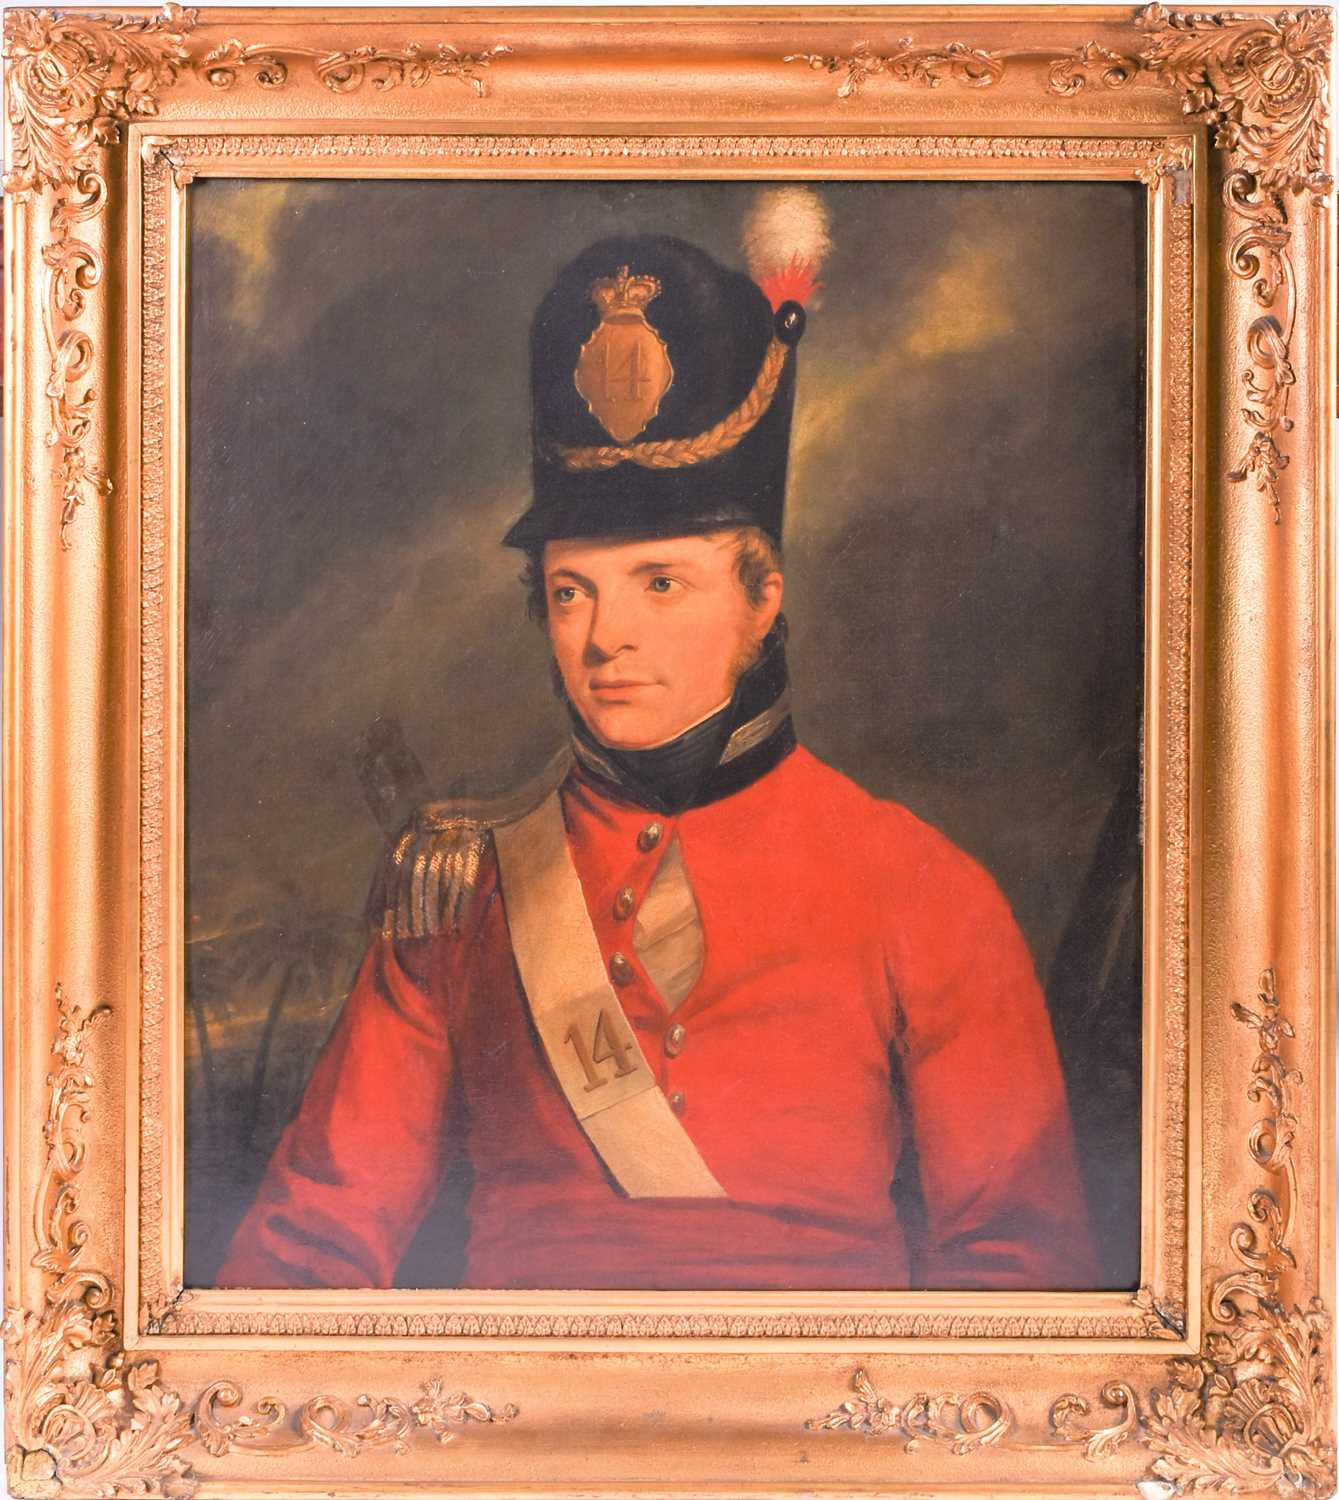 19th century oil on canvas portrait military officer uniform